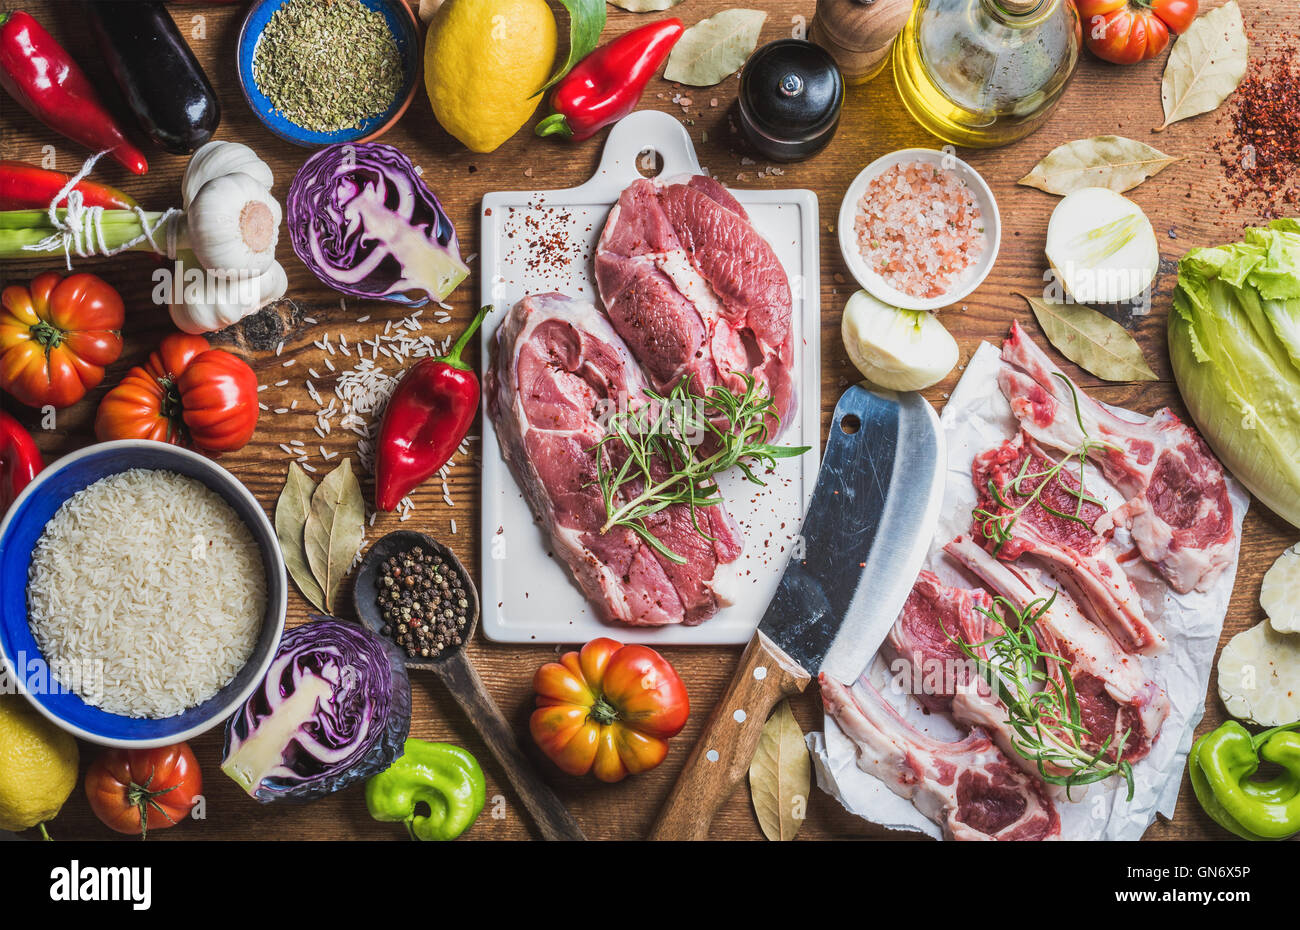 Raw uncooked lamb meat assortment, rice, oil, spices and vegetables - Stock Image